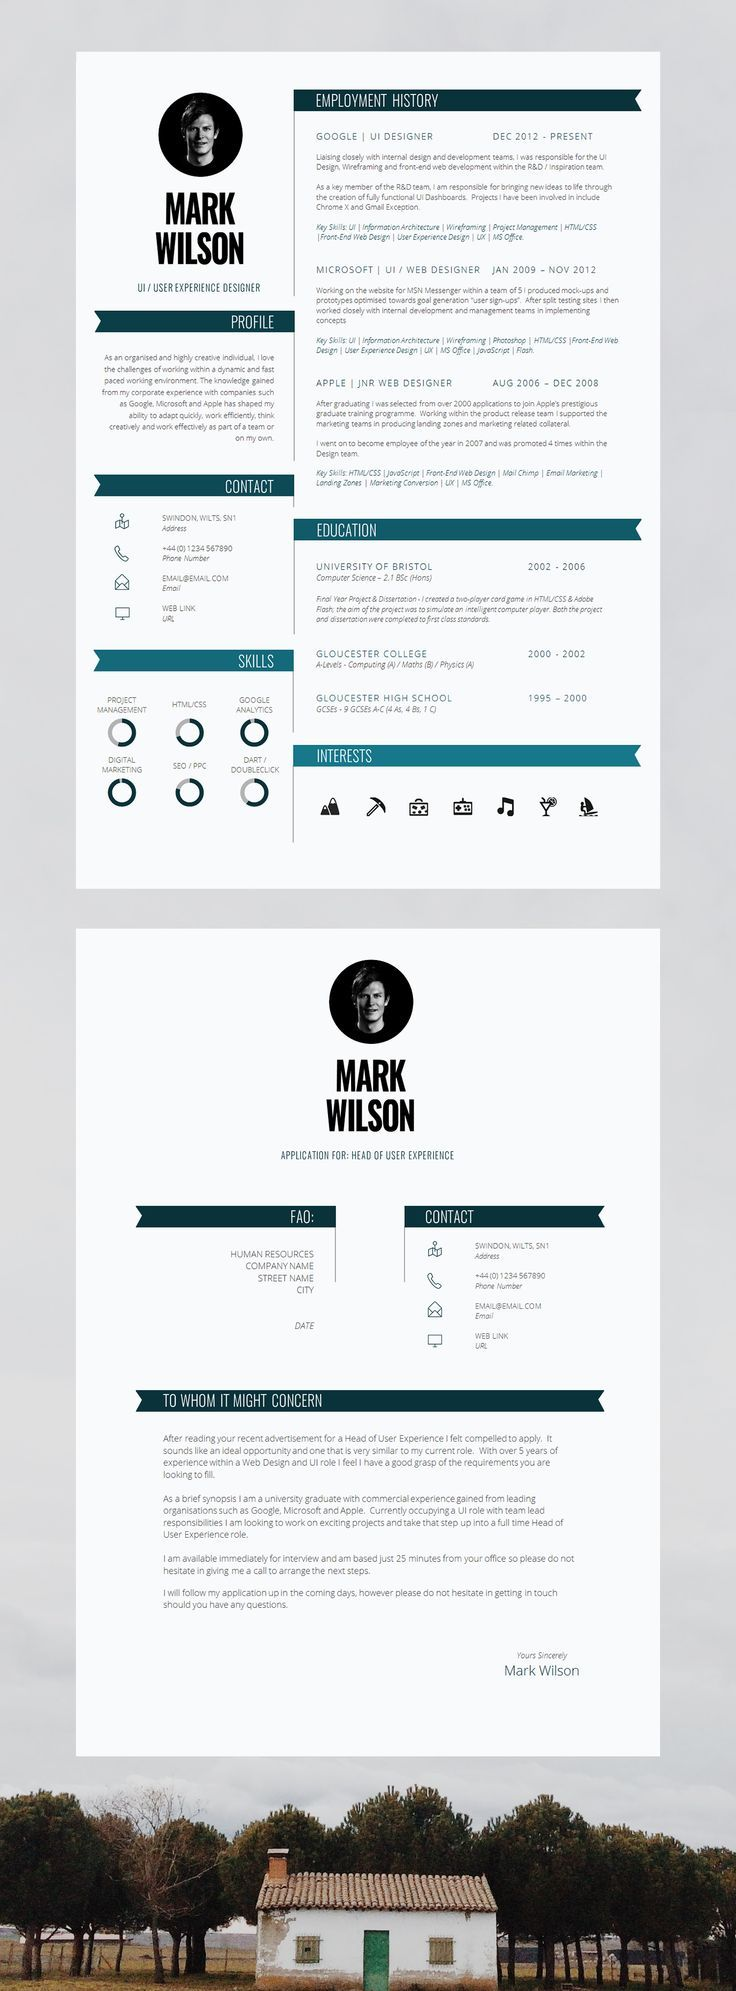 ideas about modern cv template modern resume template modern cv template don t underestimate the power